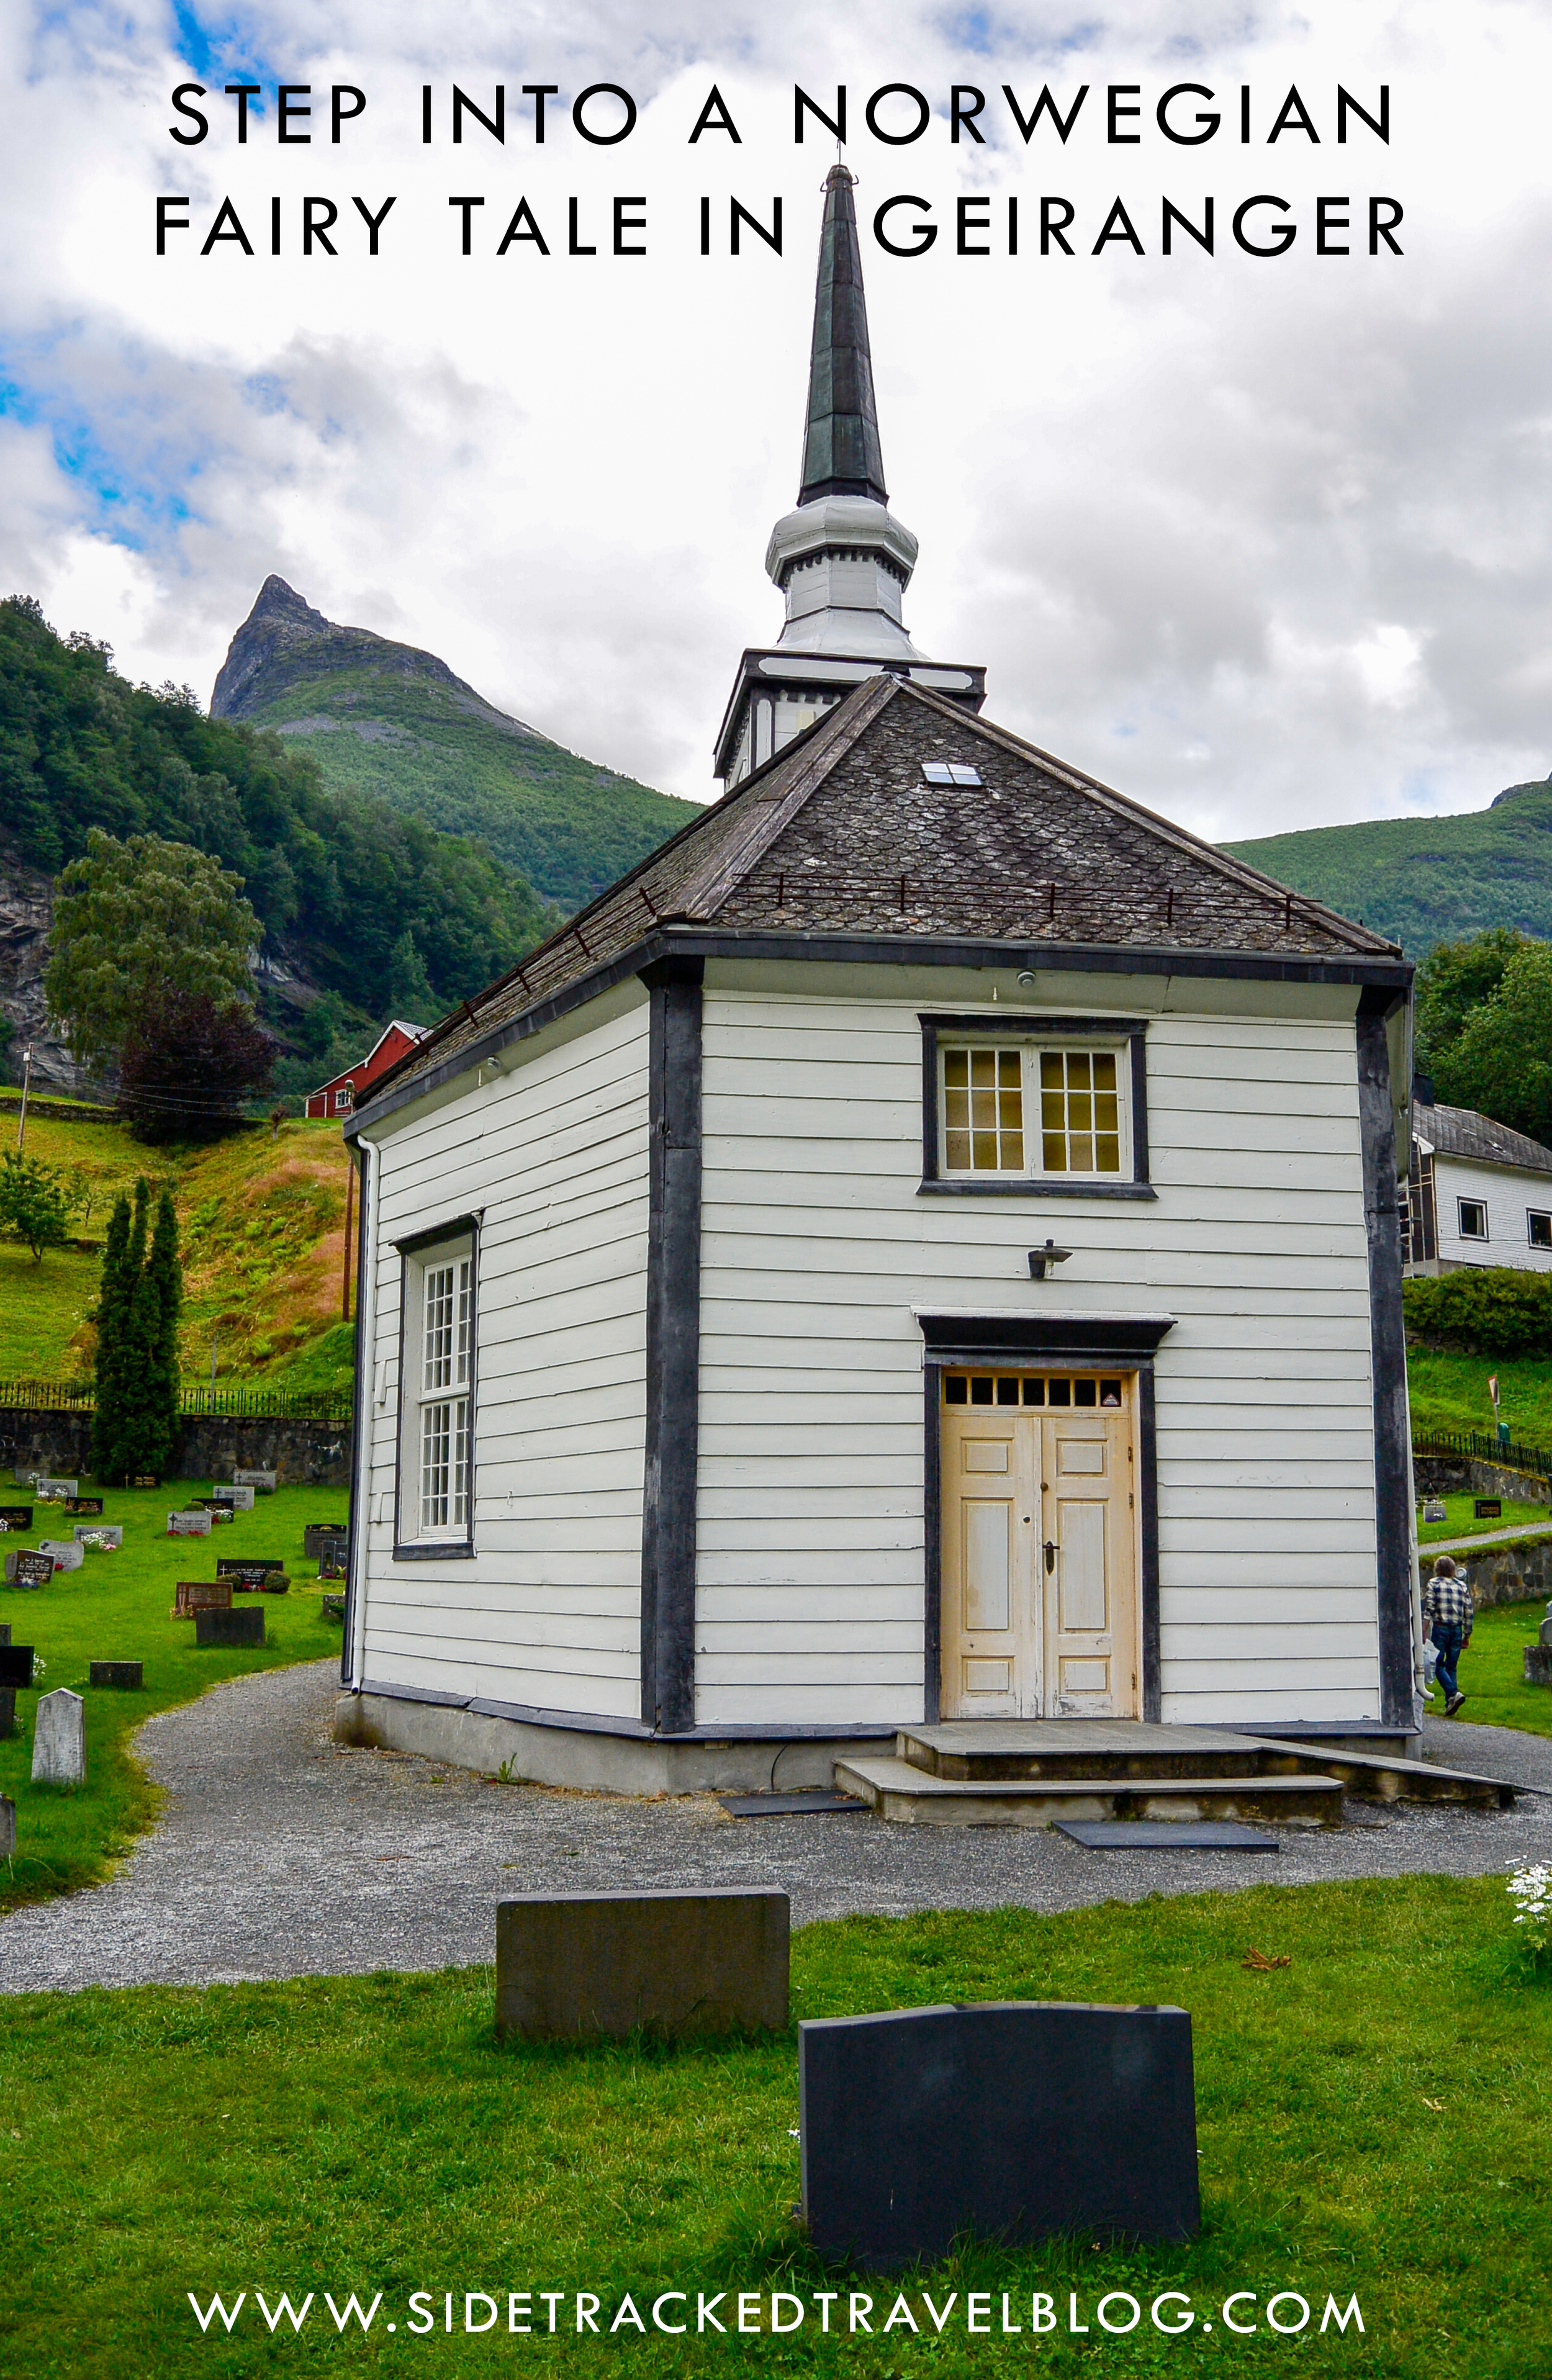 Step into a Norwegian Fairy Tale in Geiranger